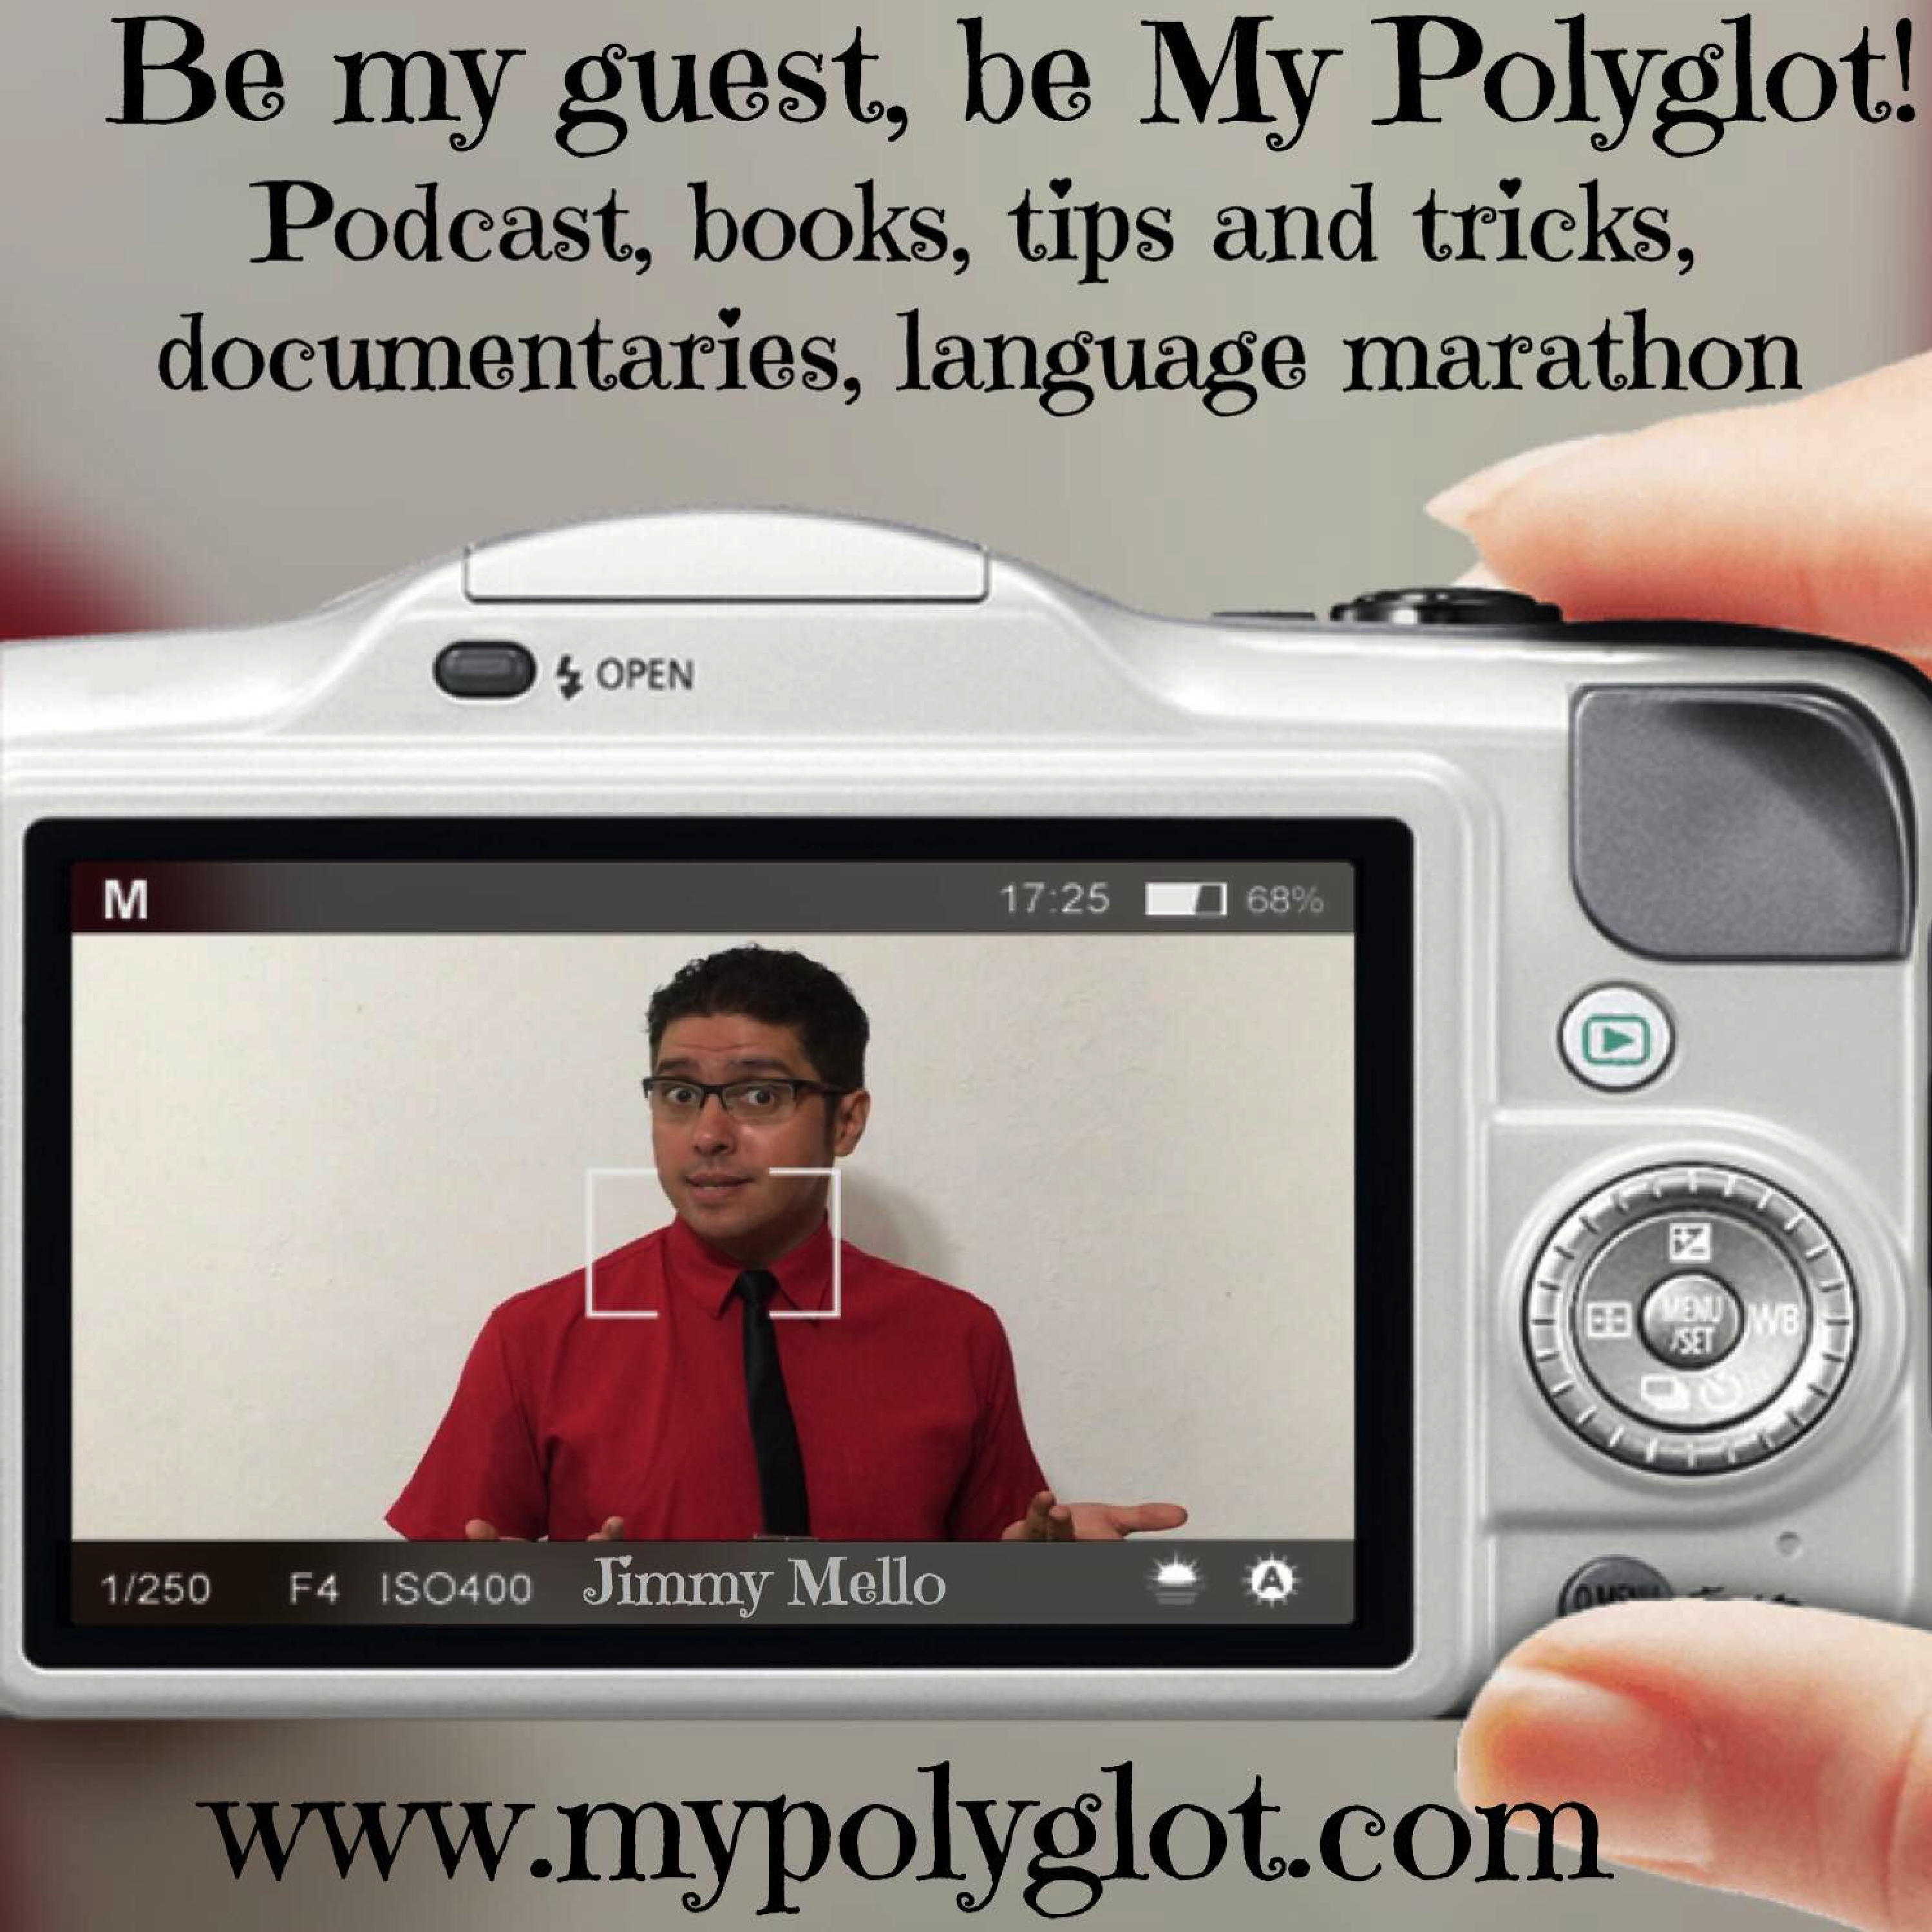 My Polyglot - The real polyglot Podcast and News in Slow Languages